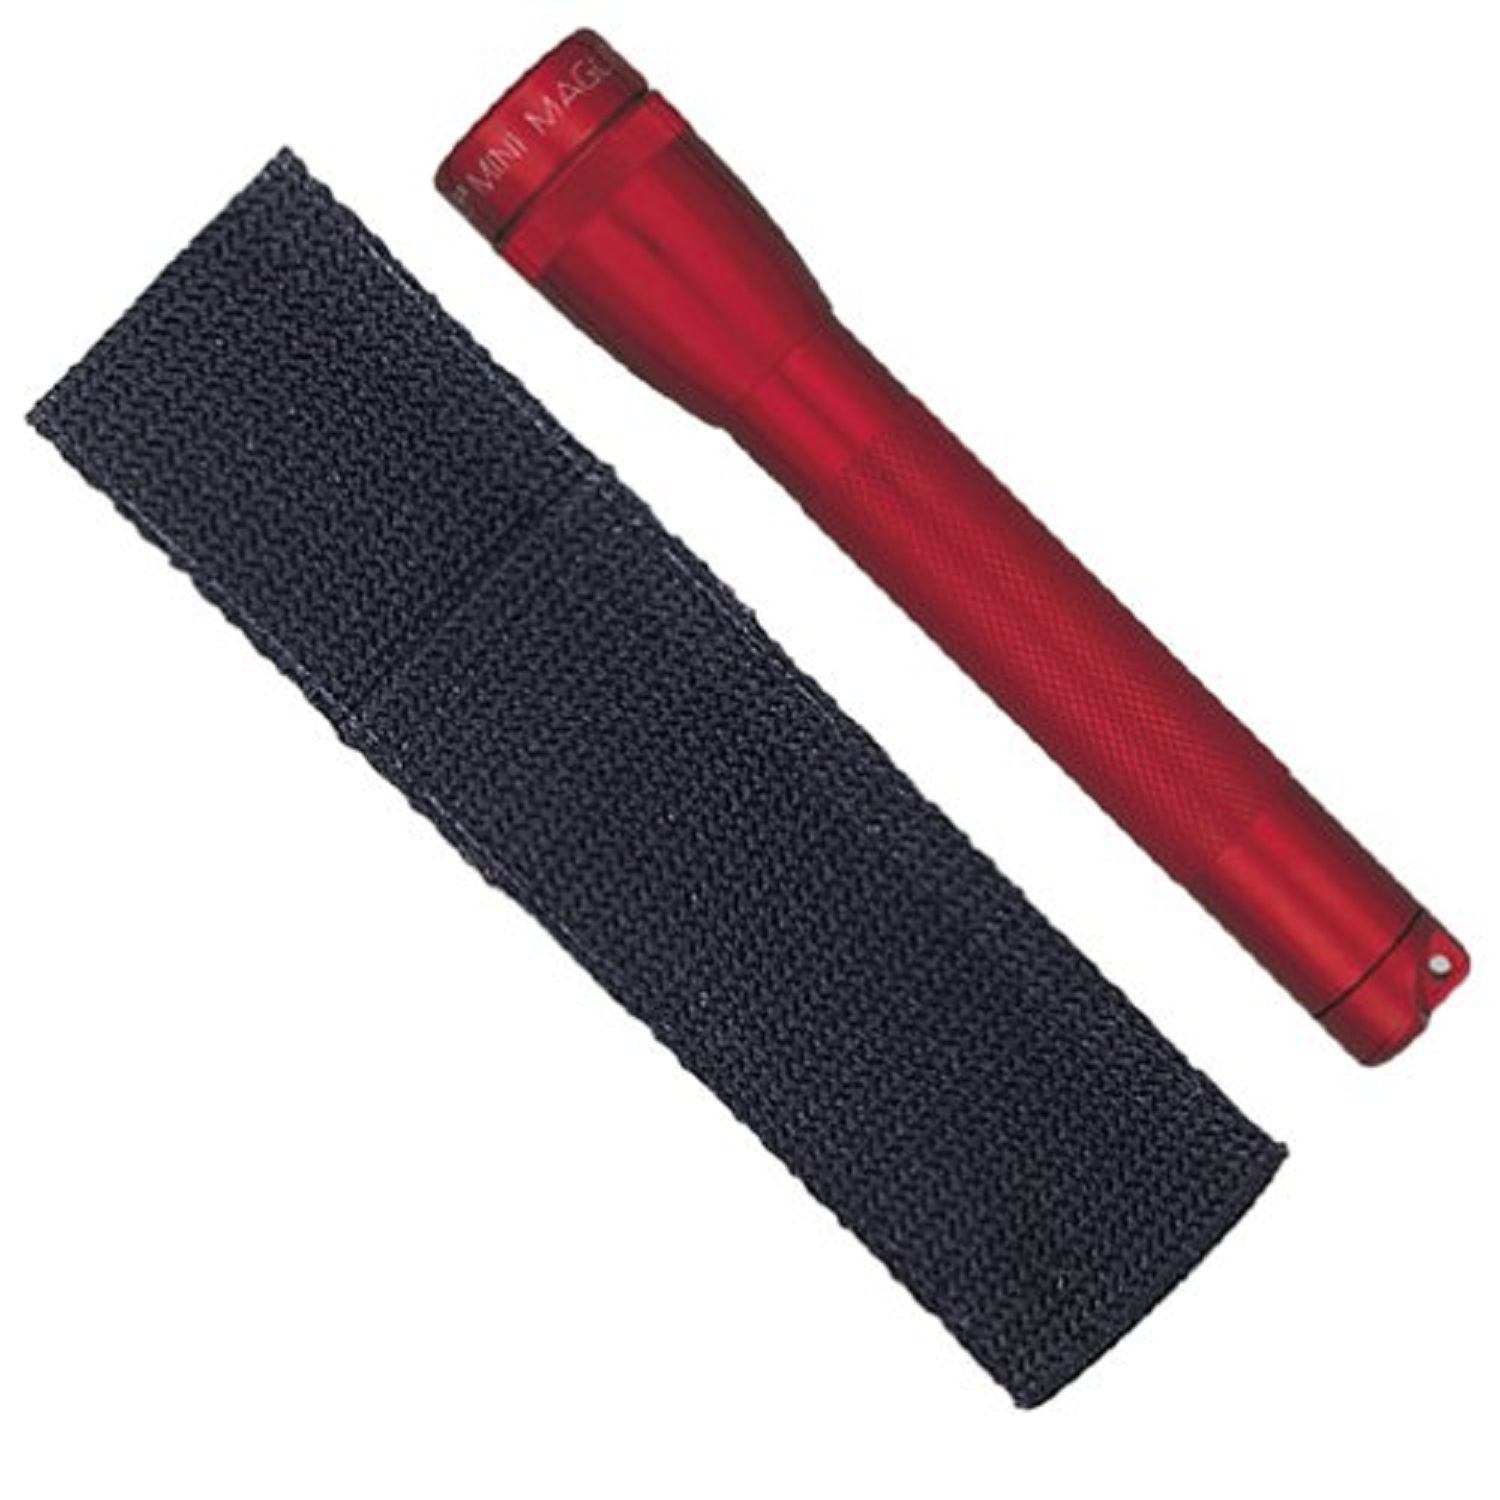 MagLite AA Mini Flashlight and Holster Combo Pack, Red